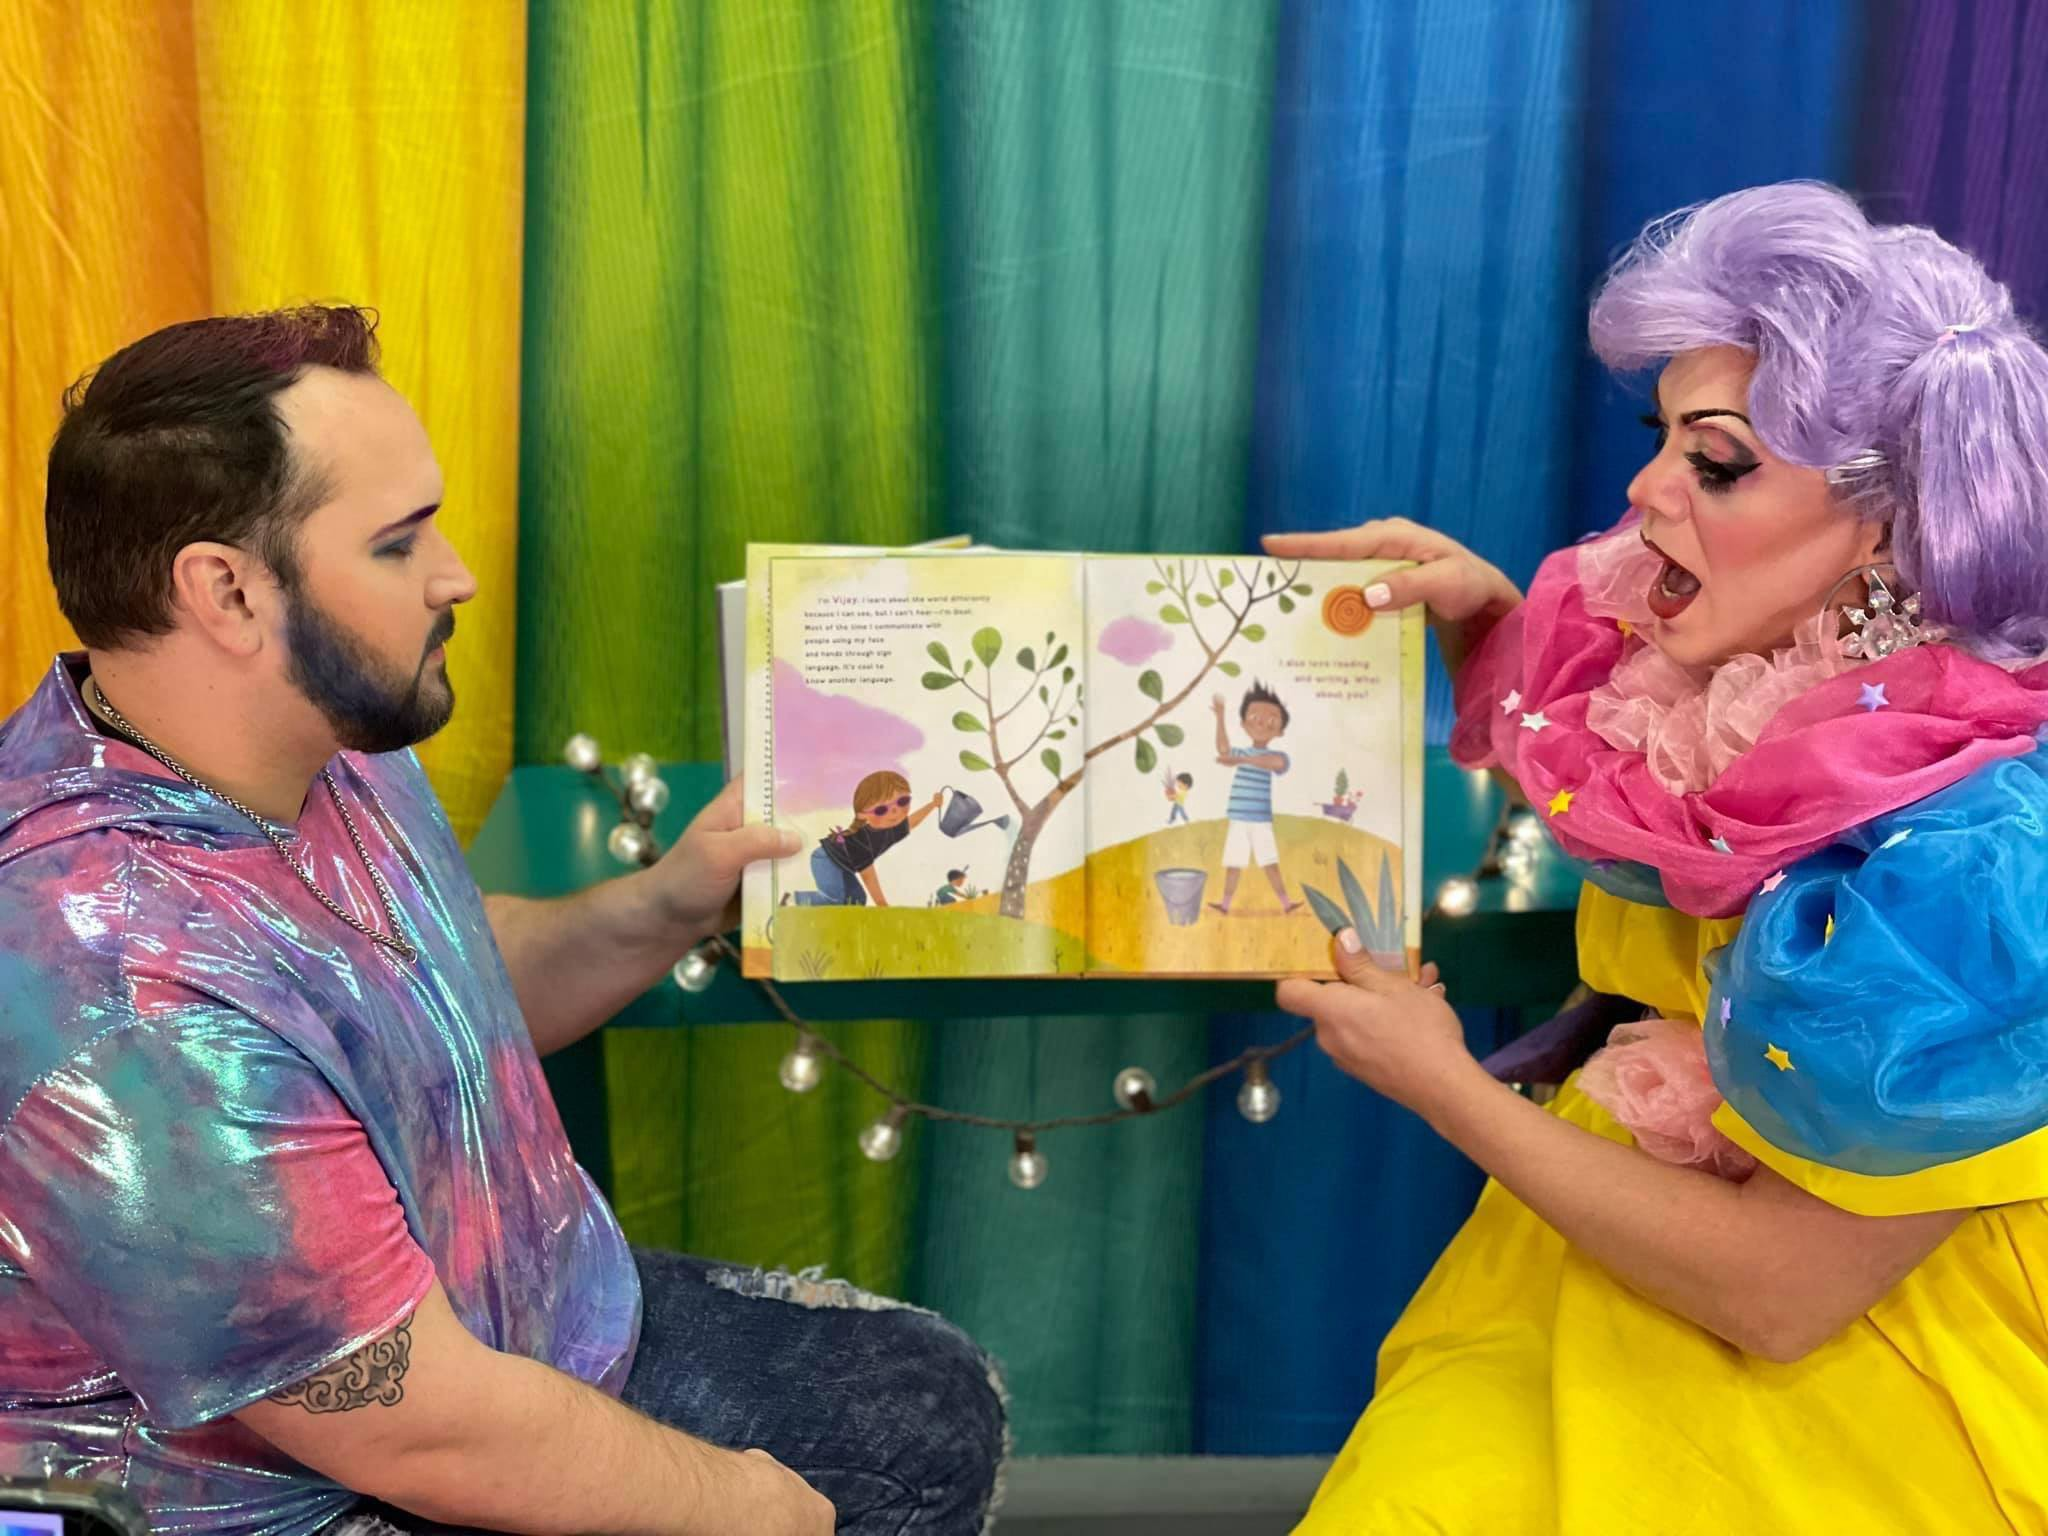 Two Drag Queen Story Time presenters are holding up a children's book in front of a rainbow background as they read the story aloud